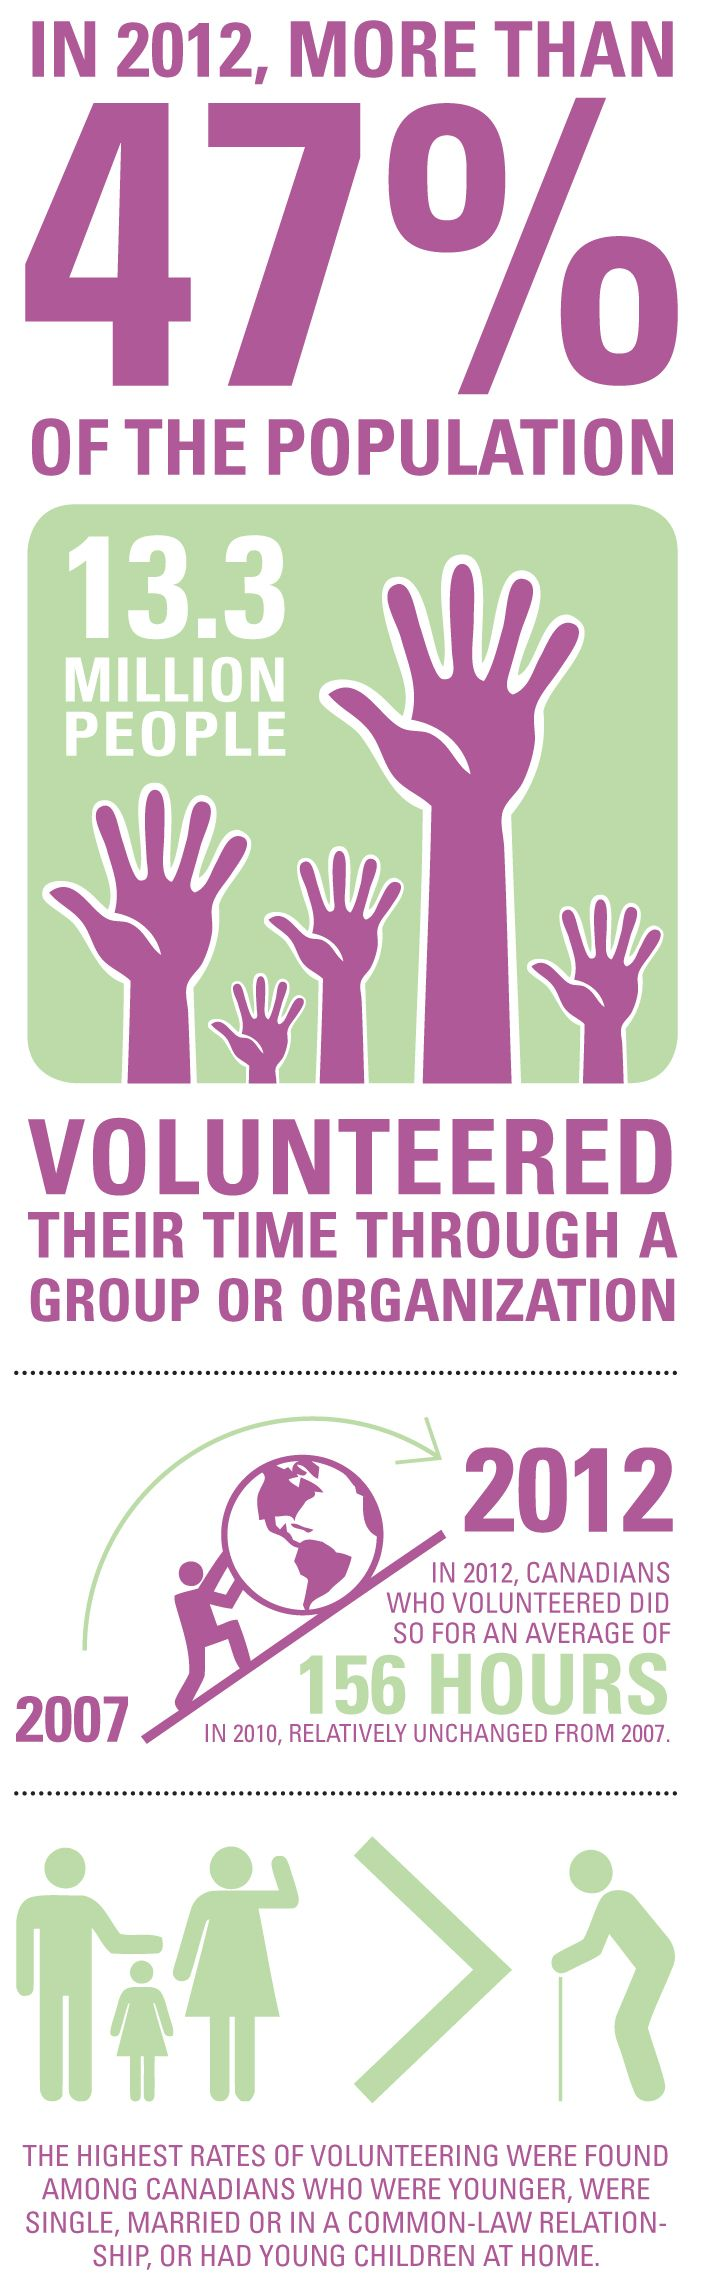 Statistics about #volunteering in Canada. Read more: http://www.issuu.com/jobpostingsca/docs/jp_may2012_cover/16